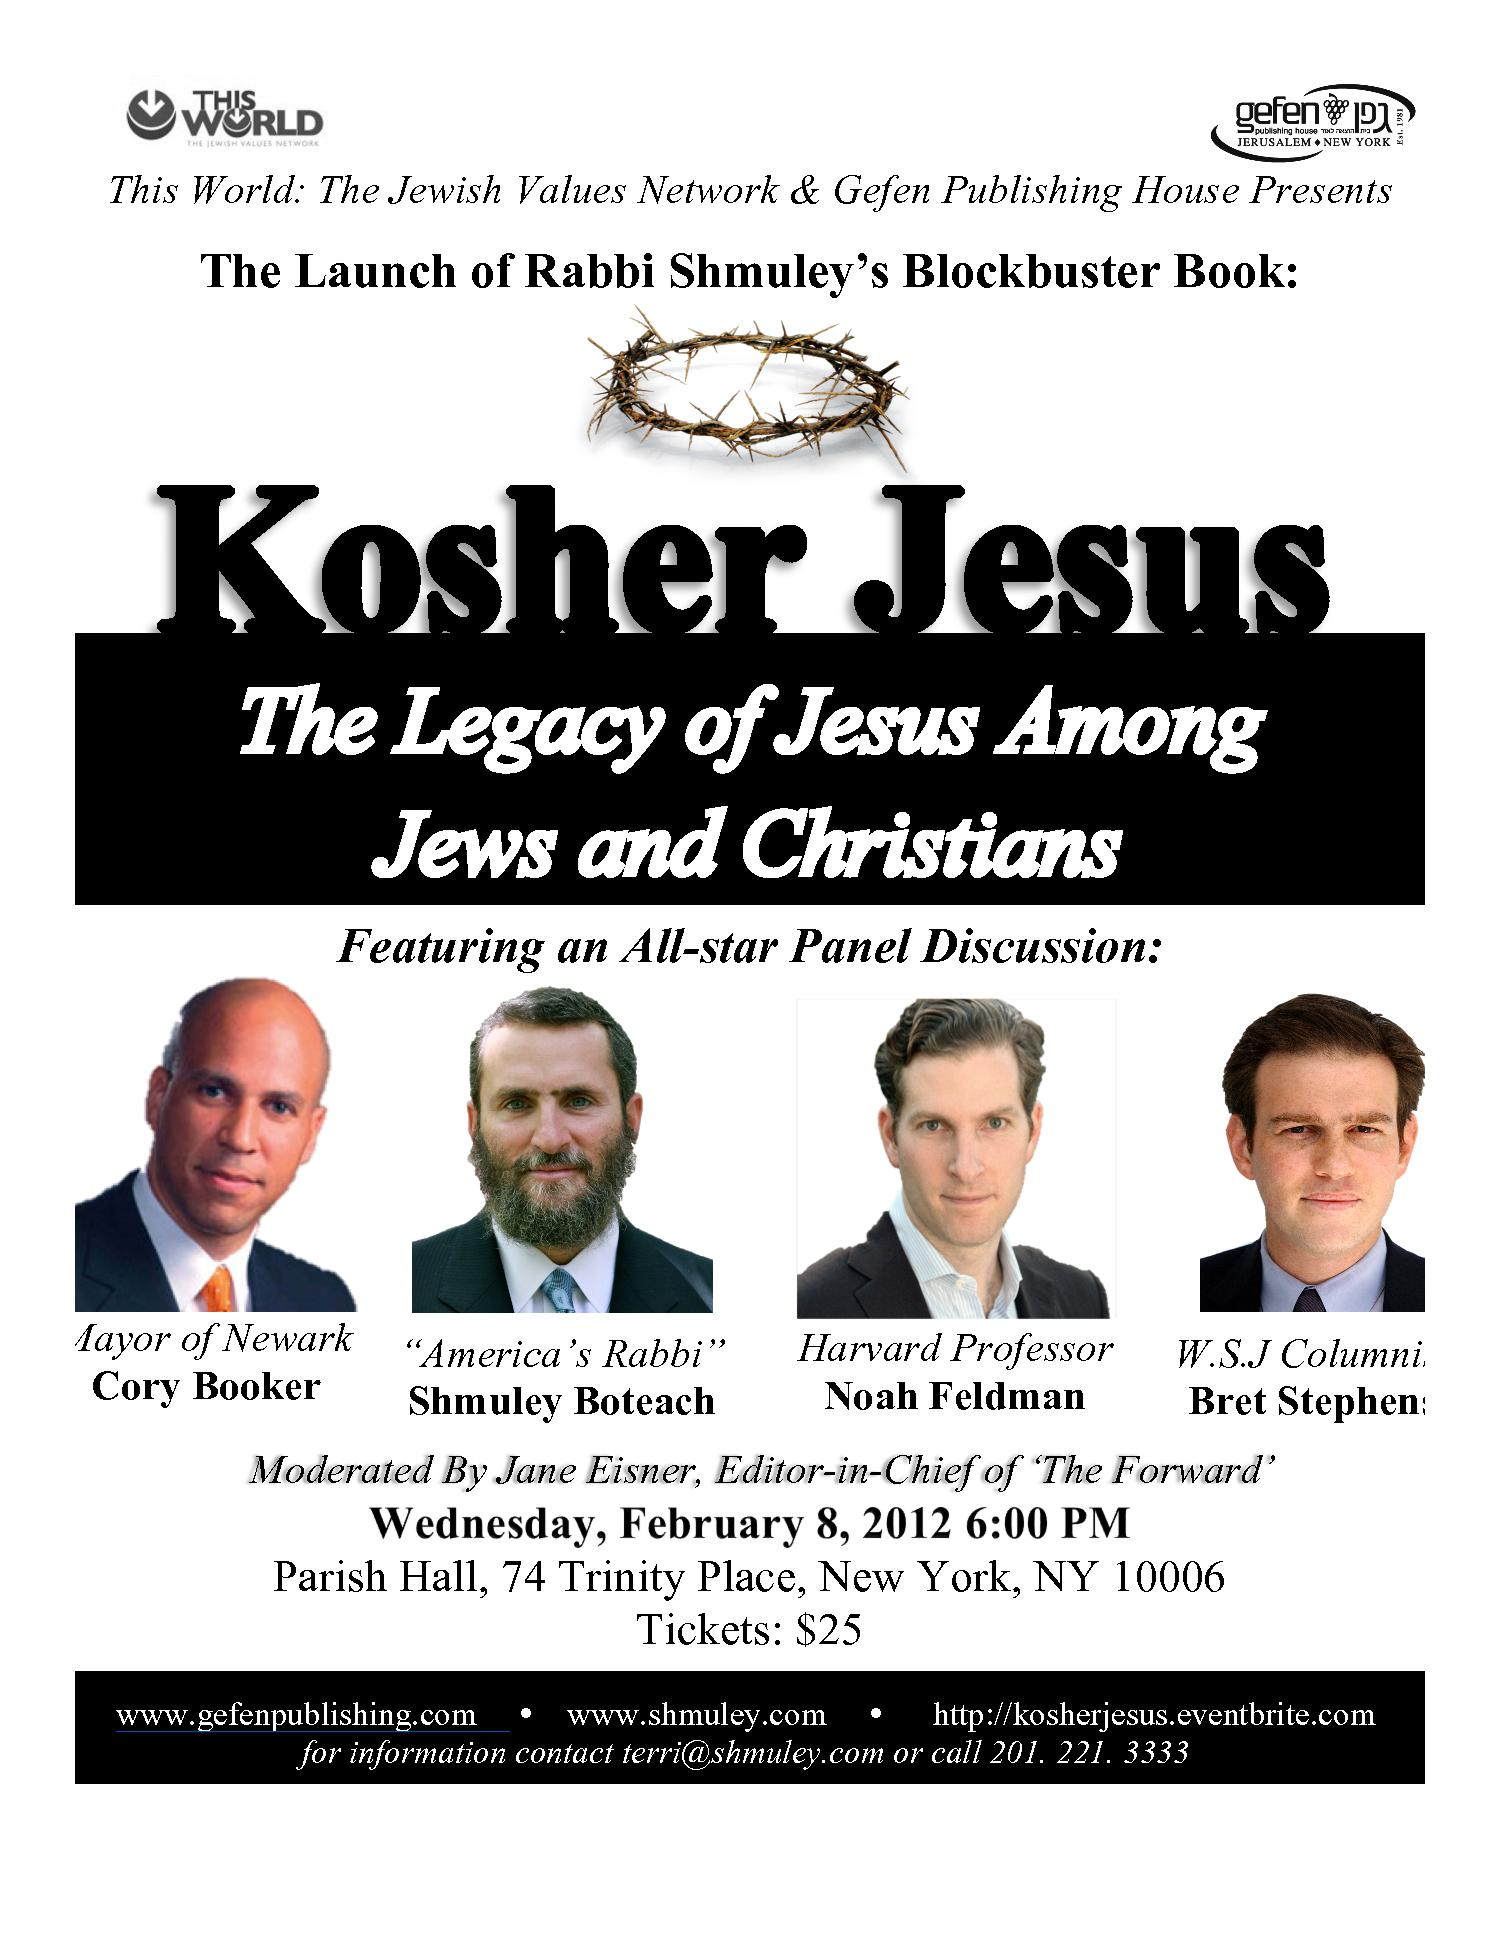 Kosher Jesus The legacy of jesus among jews and chirstians